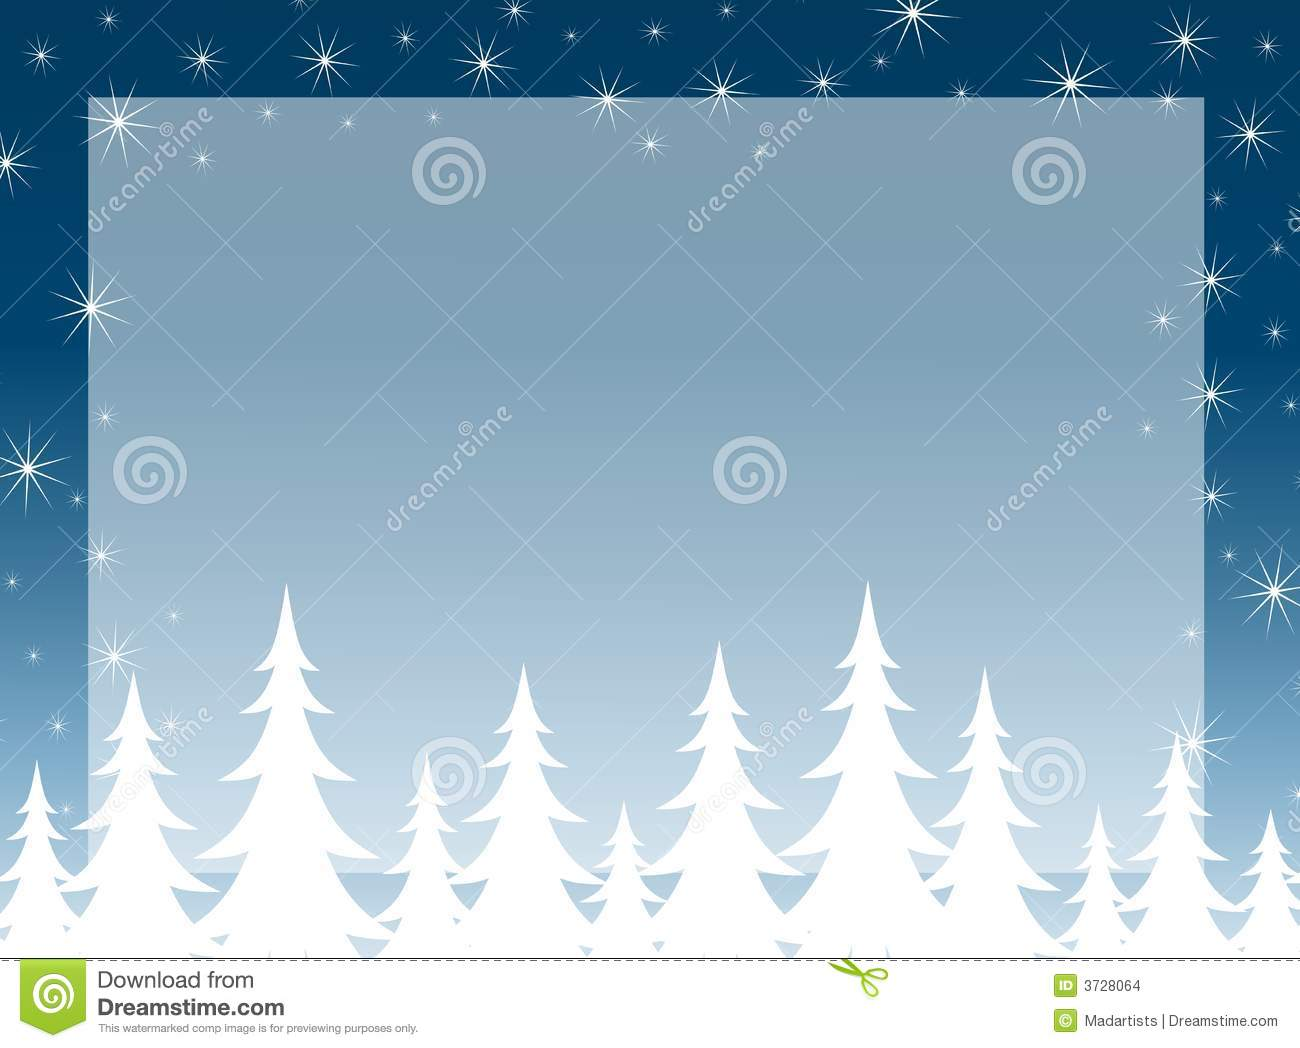 Christmas Tree Silhouette Background Stock Images - Image ...